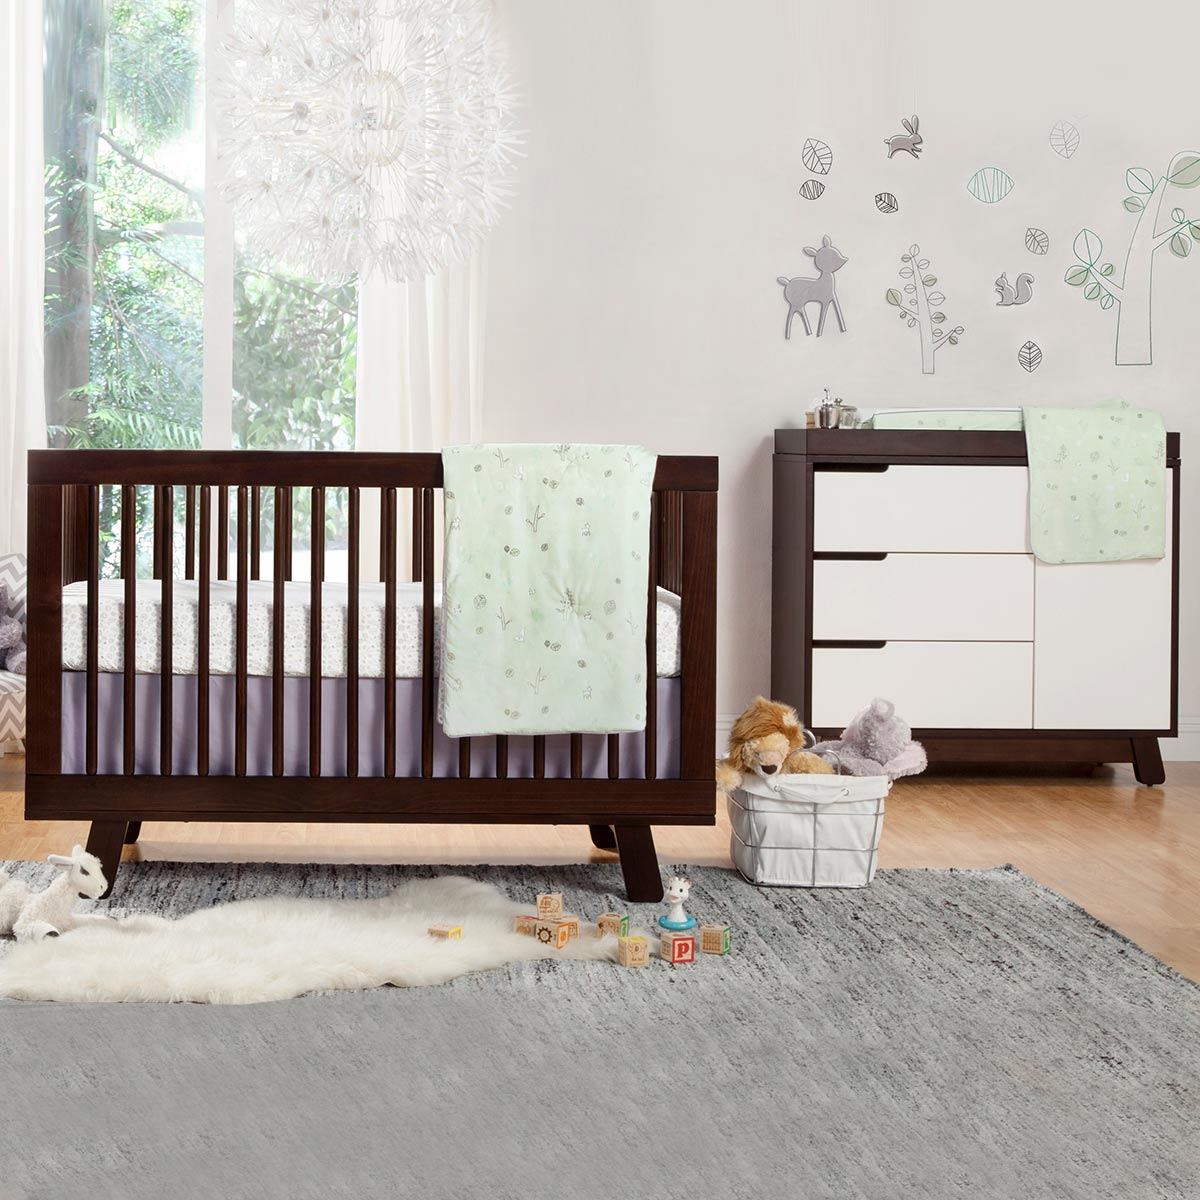 Babyletto 2 Piece Nursery Set   Hudson 3 In 1 Convertible Crib And Hudson  Changer Dresser In Two Tone Espresso And White FREE SHIPPING